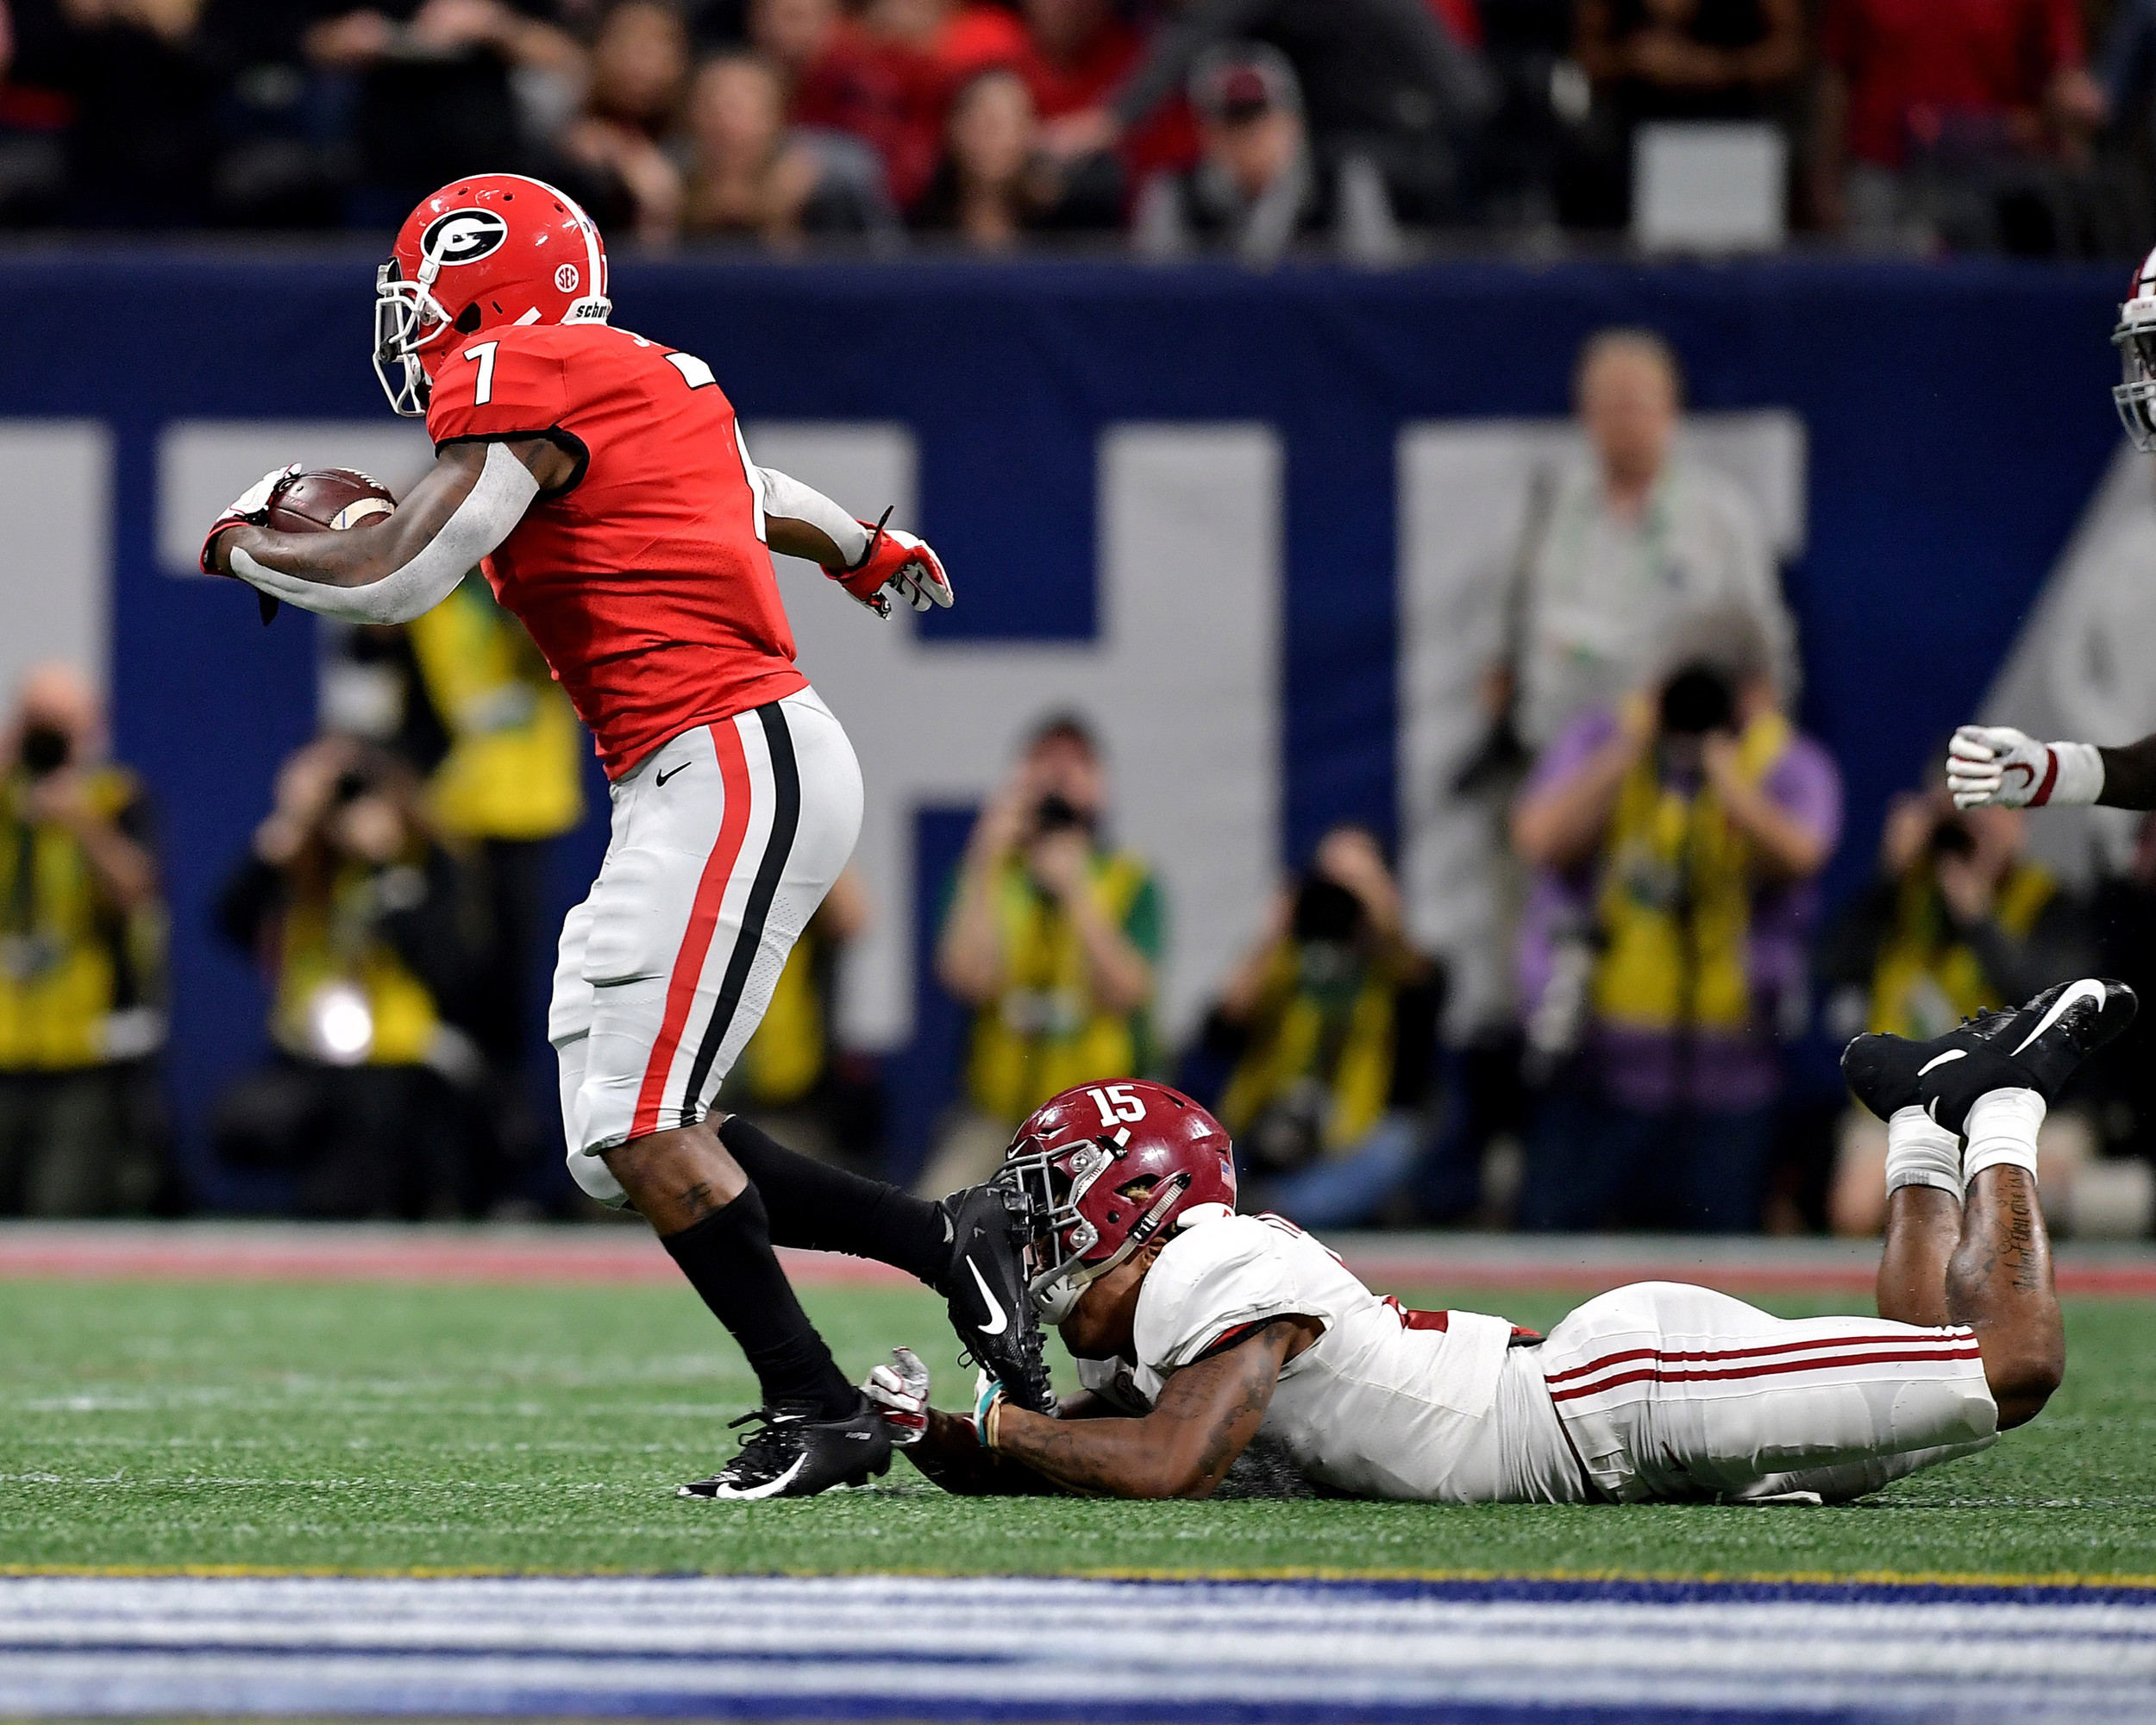 Alabama Crimson Tide defensive back Xavier McKinney (15) tries to tackle Georgia Bulldogs running back D'Andre Swift (7) during the first half of the 2018 SEC Championship football game at Mercedes-Benz Stadium in Atlanta, Ga., on Dec. 1, 2018. Alabama wins 35-28. (Photo by Lee Walls)